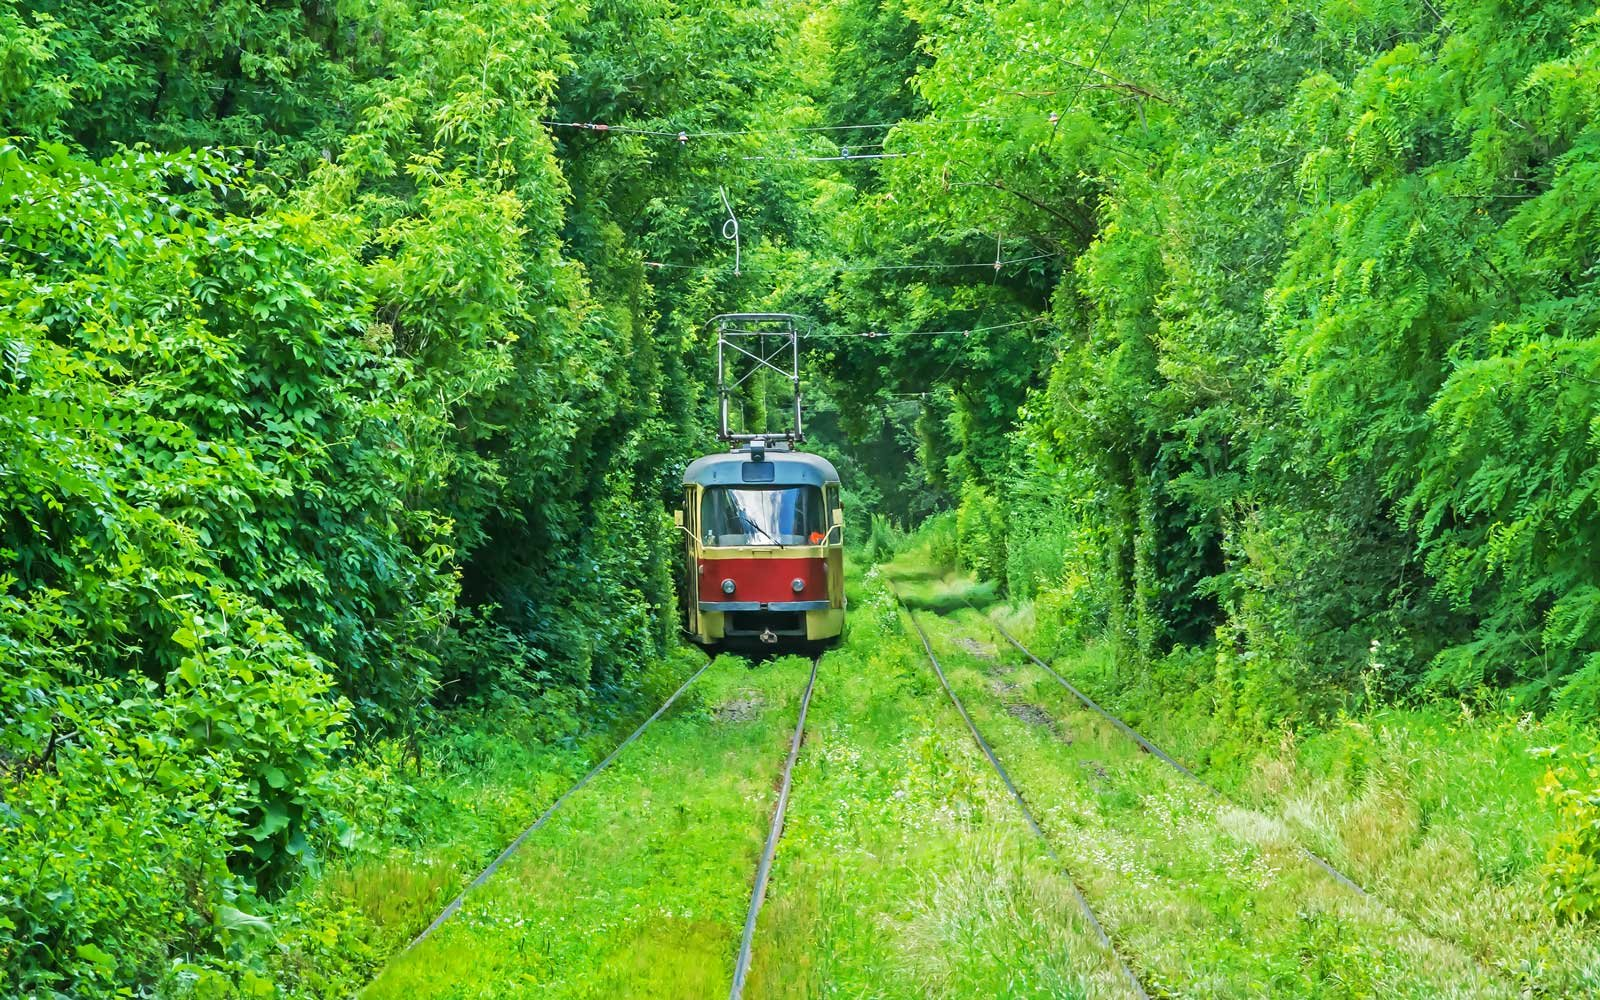 Tram tunnel of love in ukraine